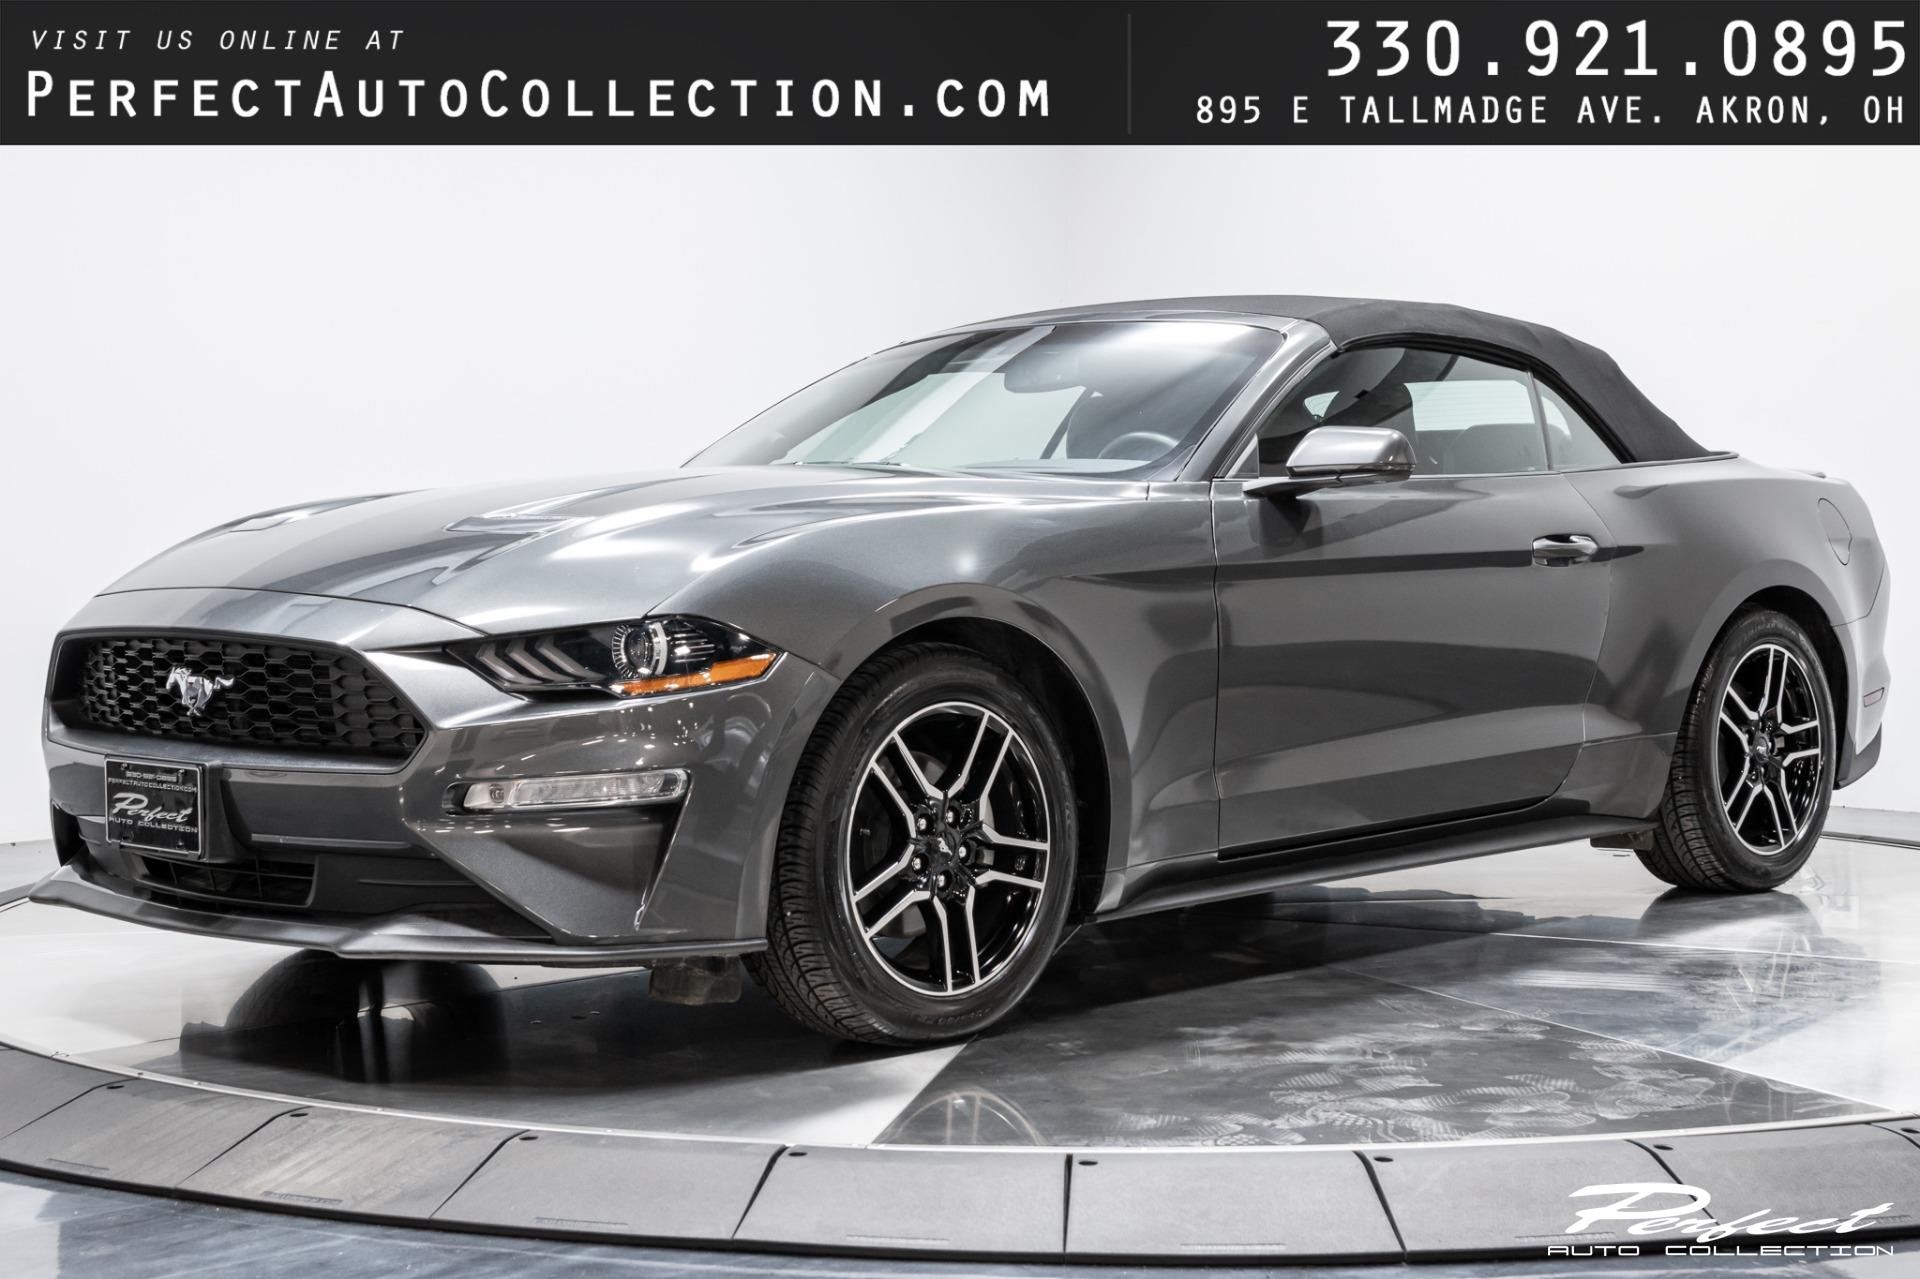 Used 2020 Ford Mustang EcoBoost Premium for sale $27,993 at Perfect Auto Collection in Akron OH 44310 1